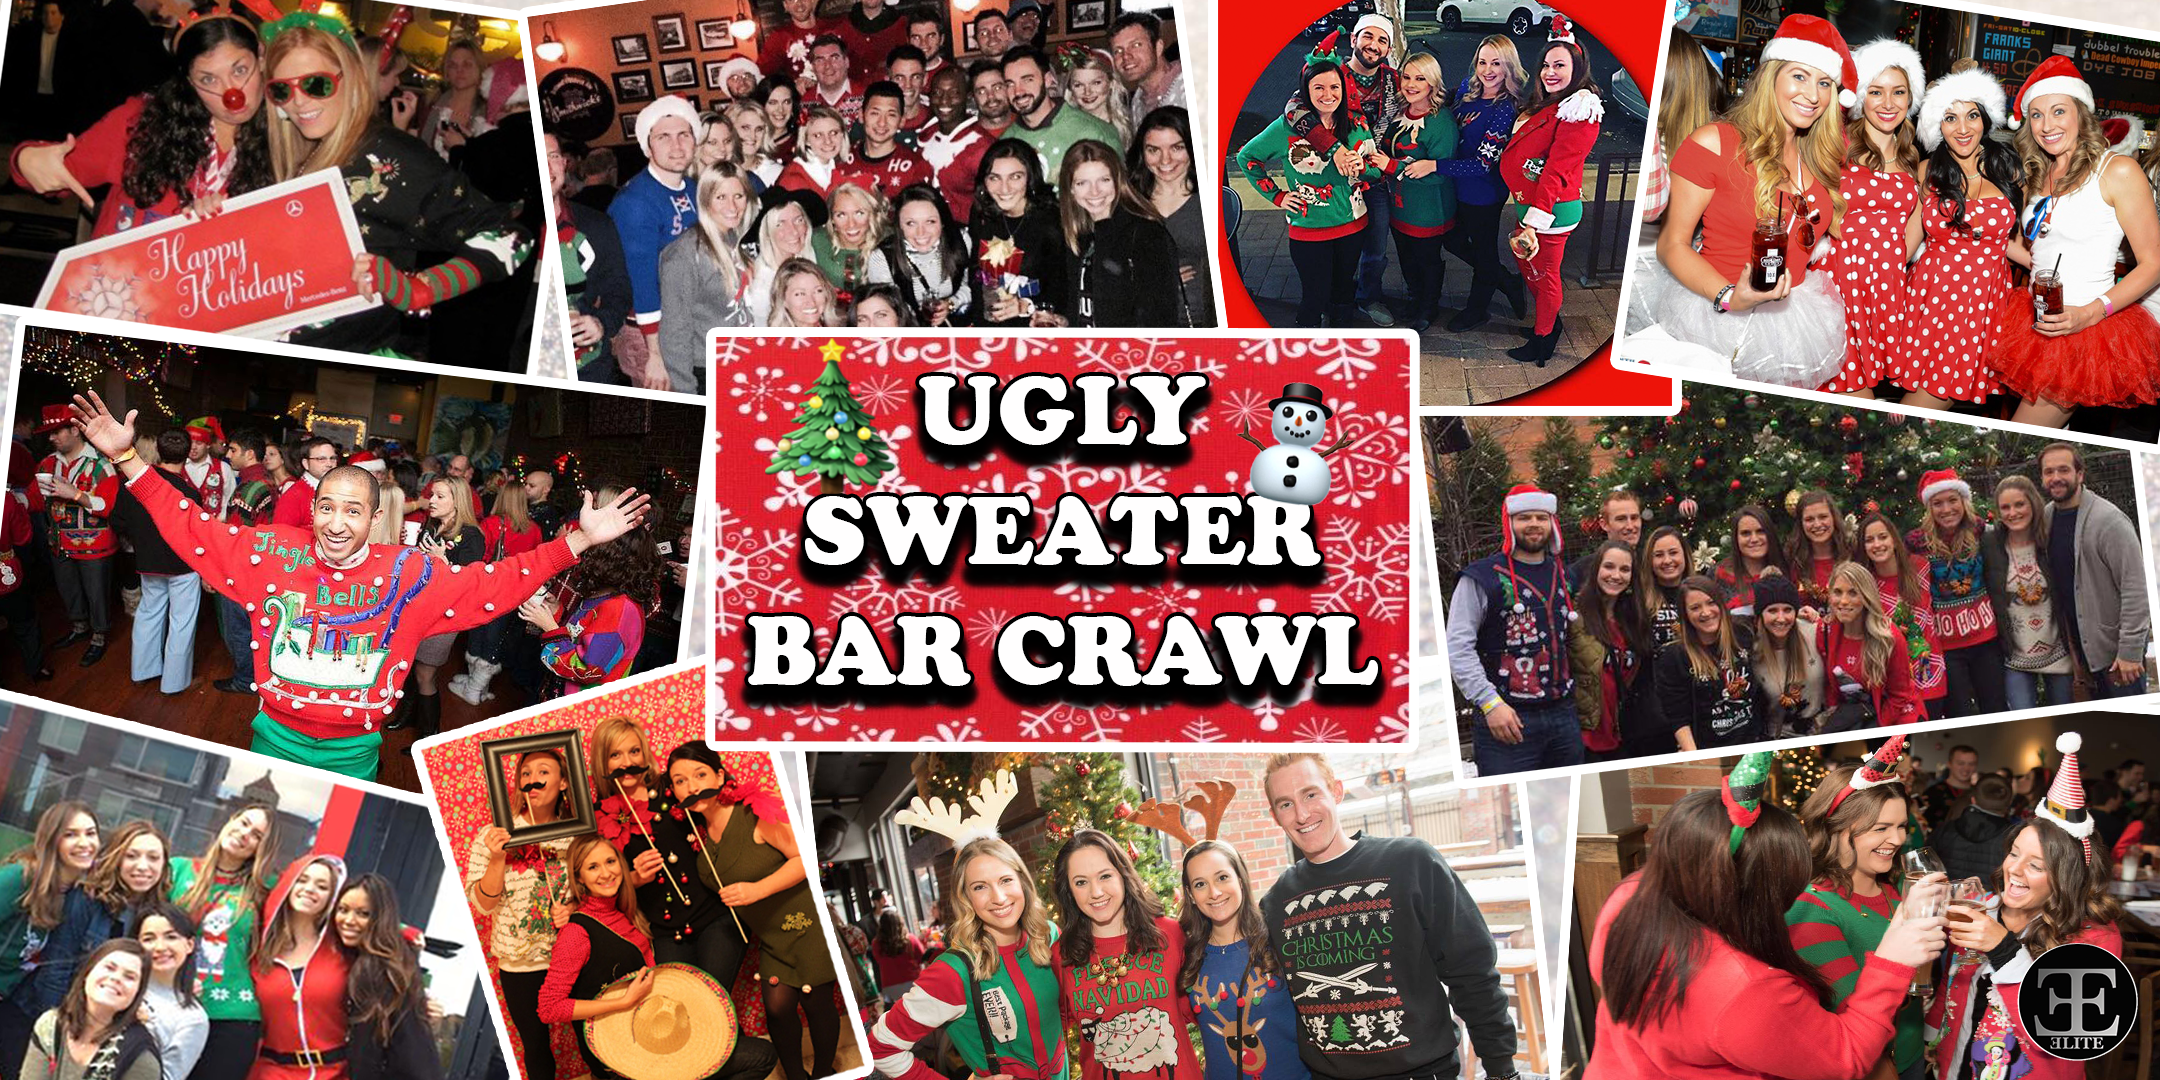 Ugly Sweater Bar Crawl -New York, NY